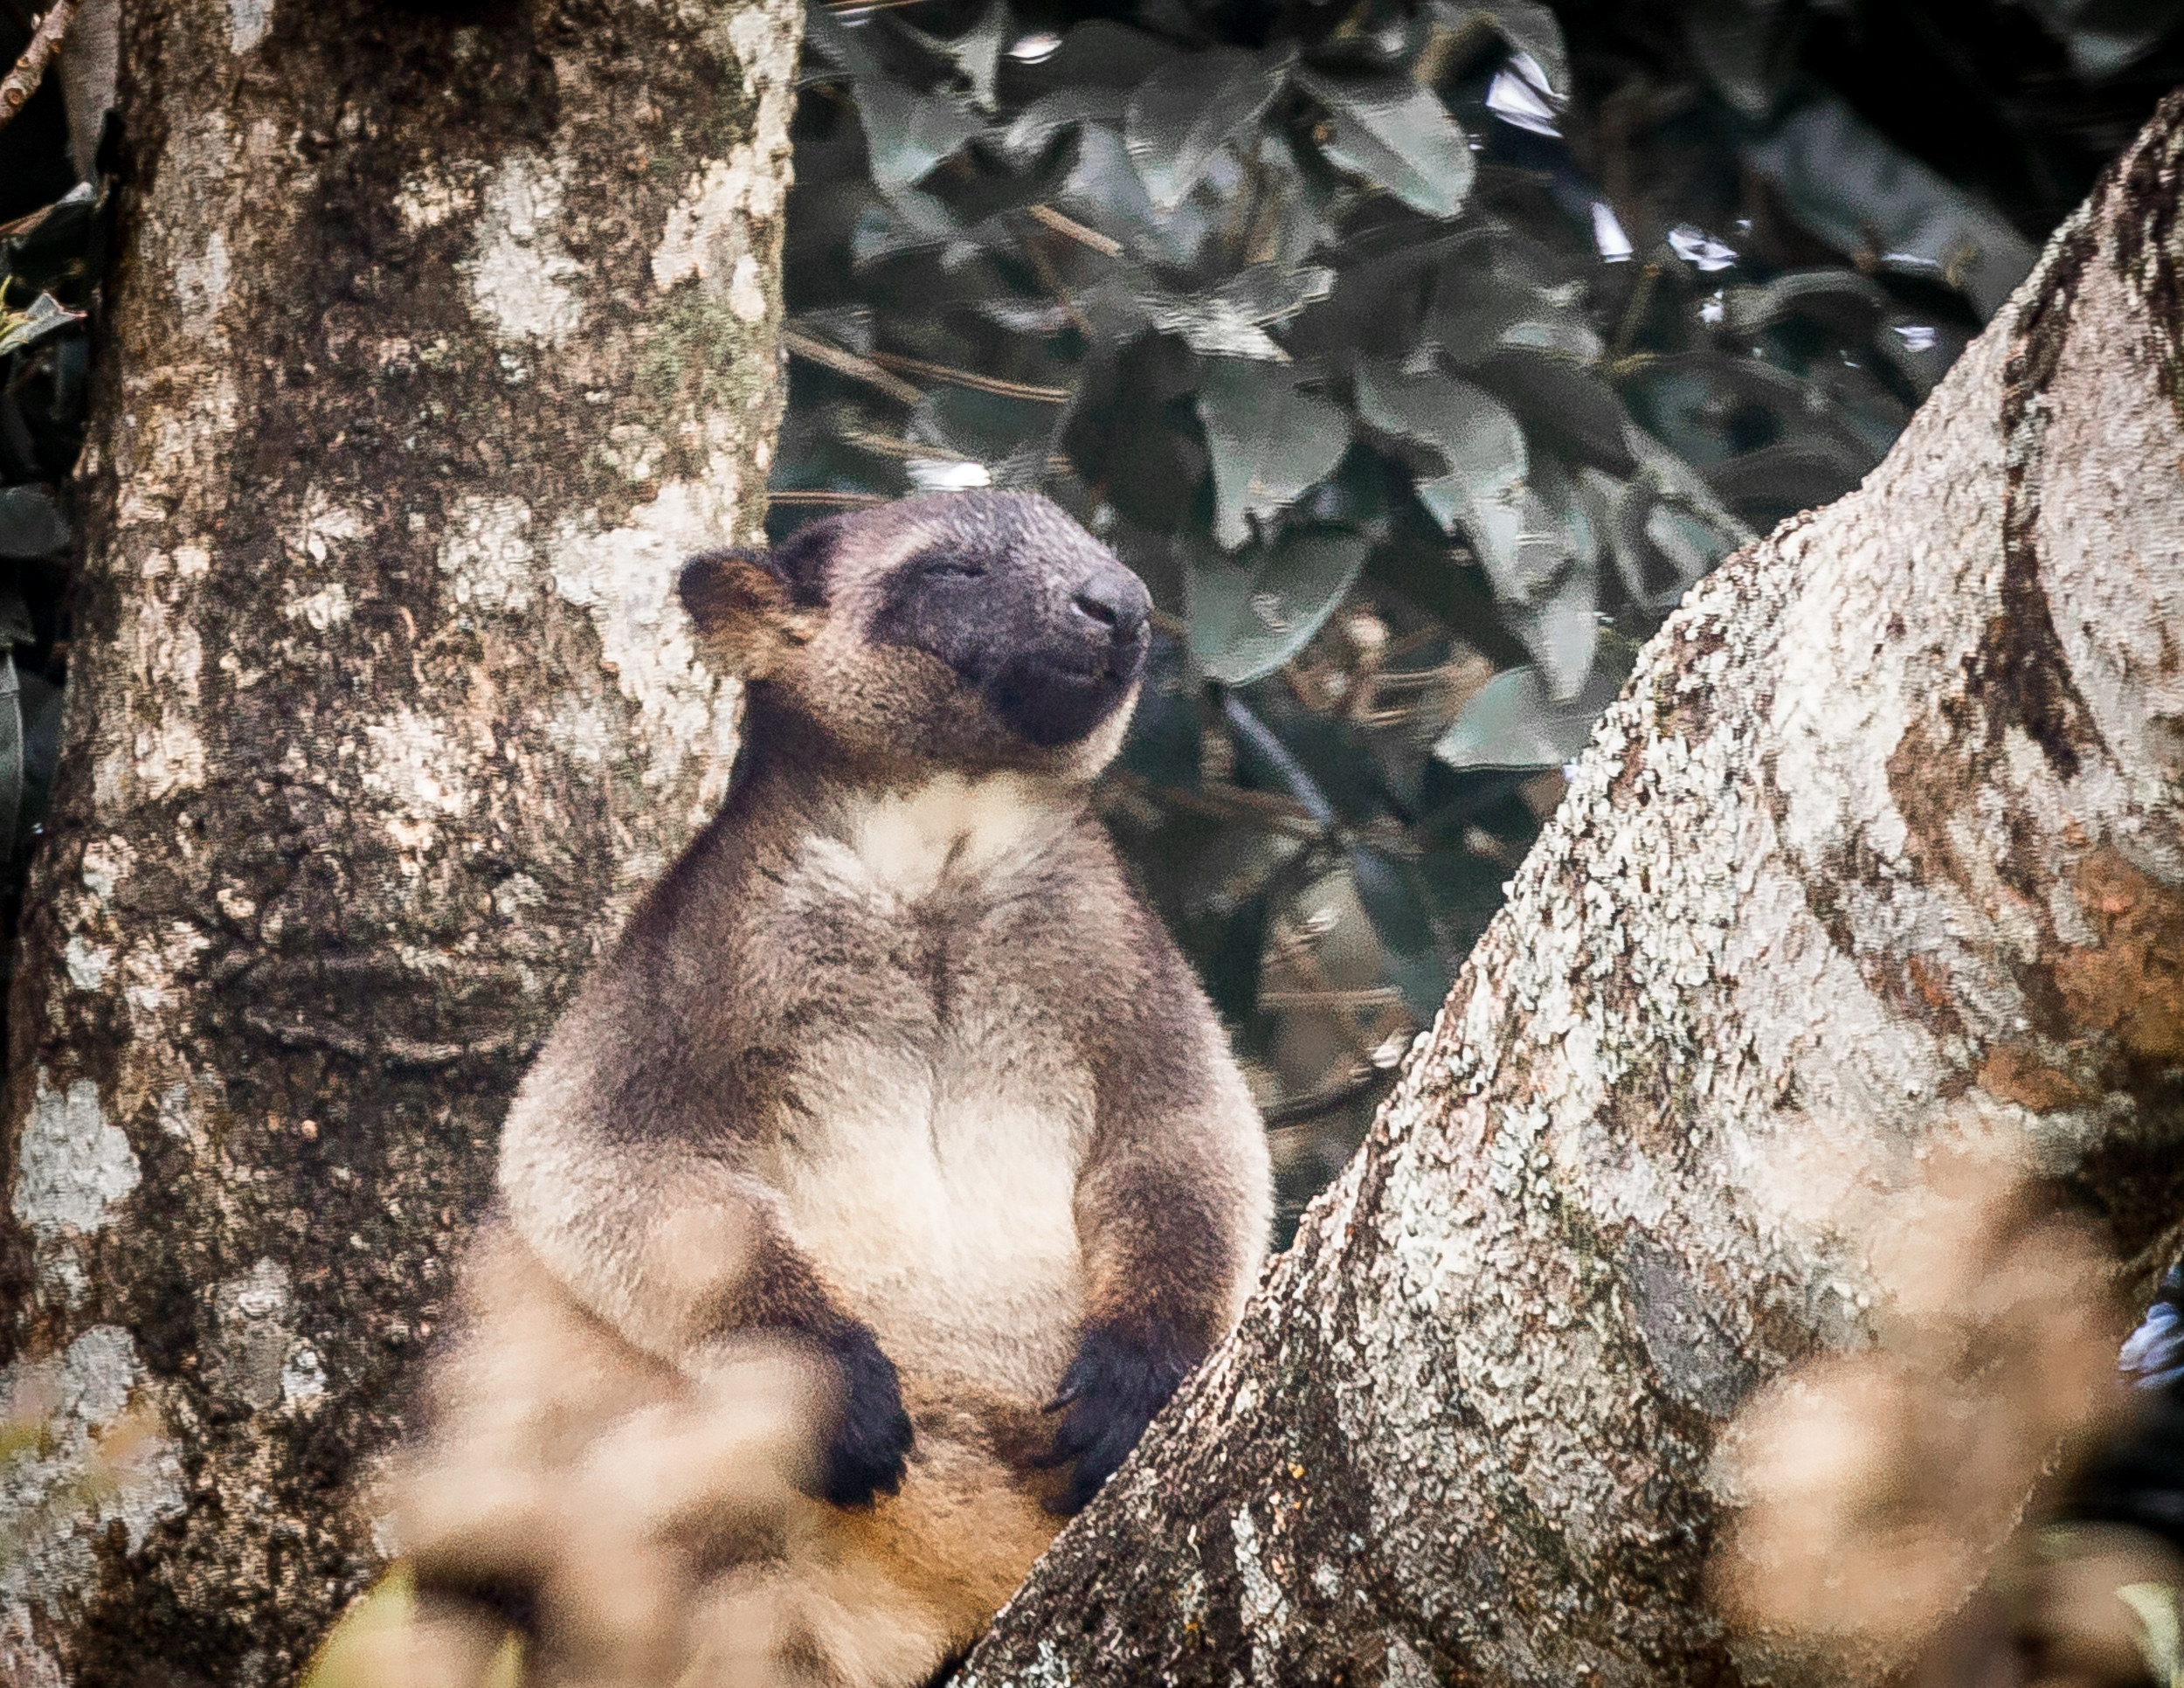 A Tree Kangaroo in the nearby Atherton Tablelands